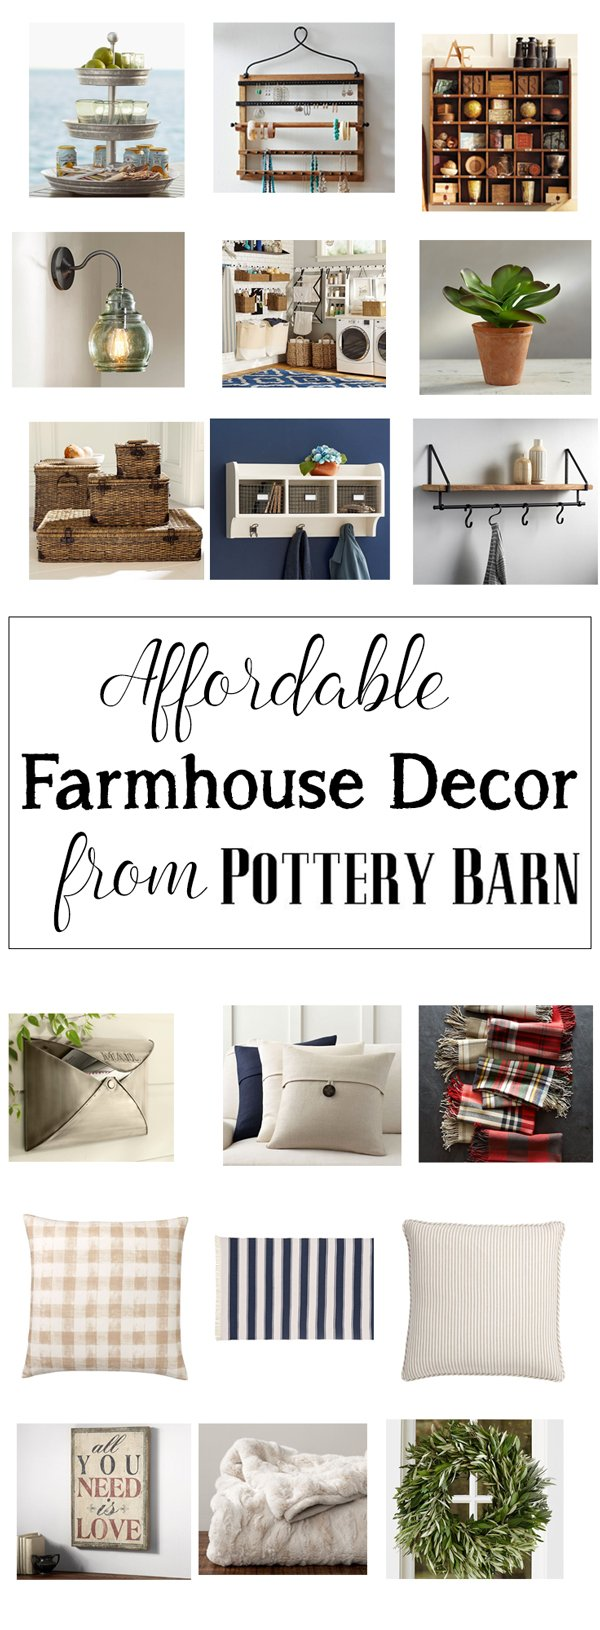 Affordable Farmhouse Decor From Pottery Barn